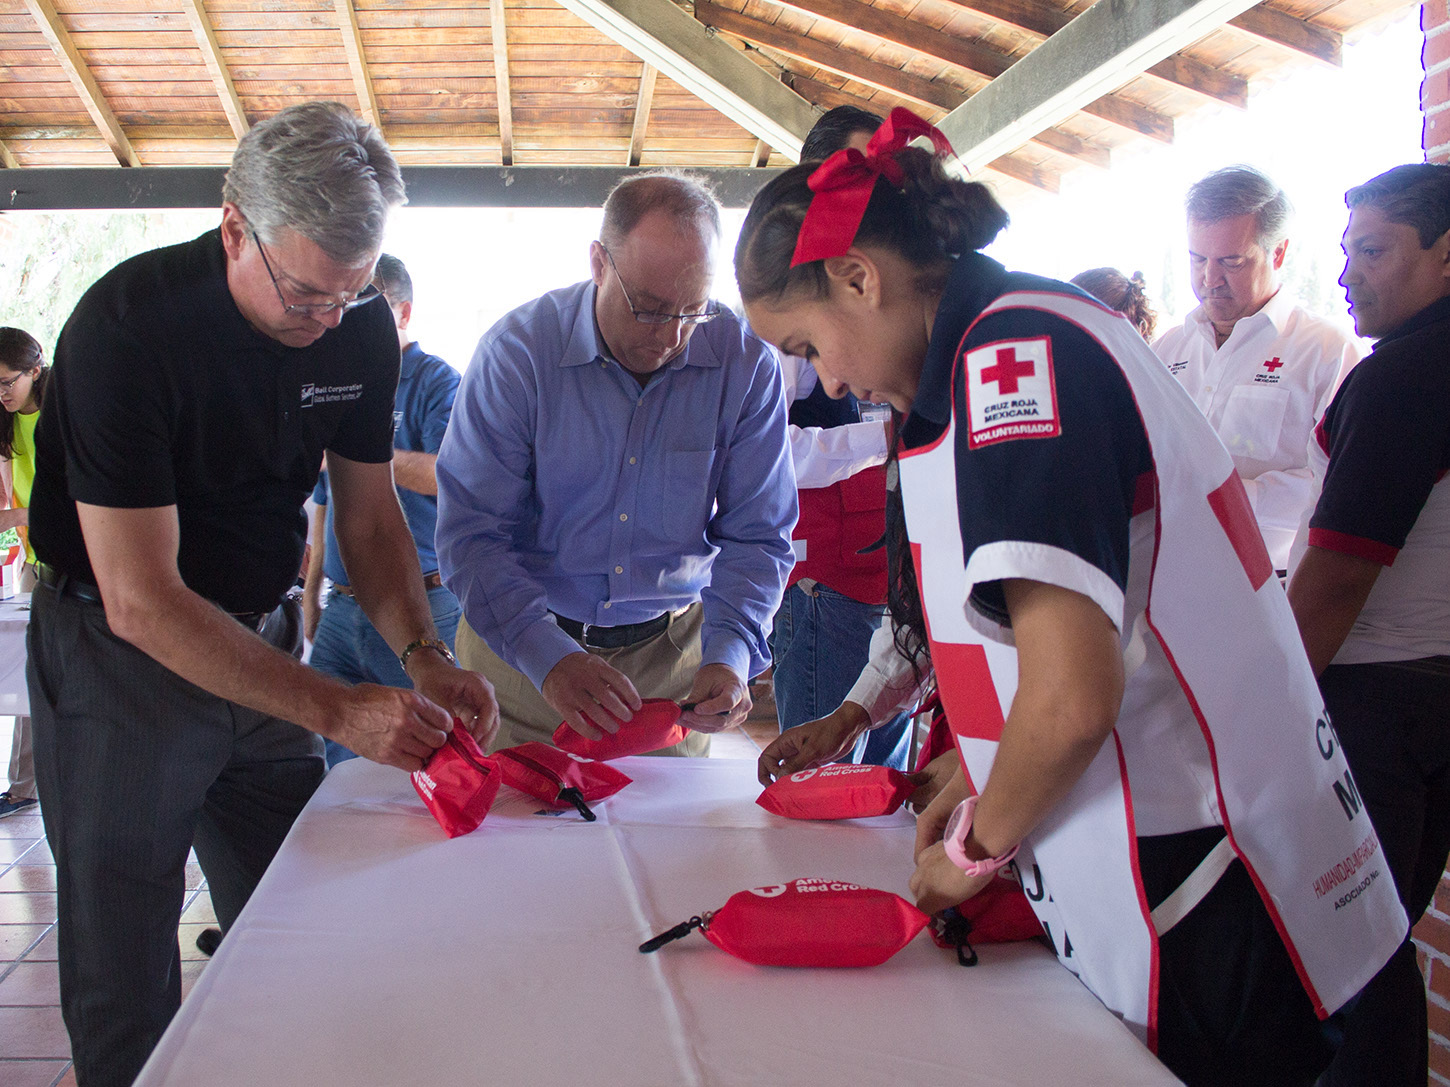 Disaster preparedness is a focus of Ball's global corporate citizenship program. Ball employees and executives recently joined together to build first aid kits for Mexico's earthquake victims.